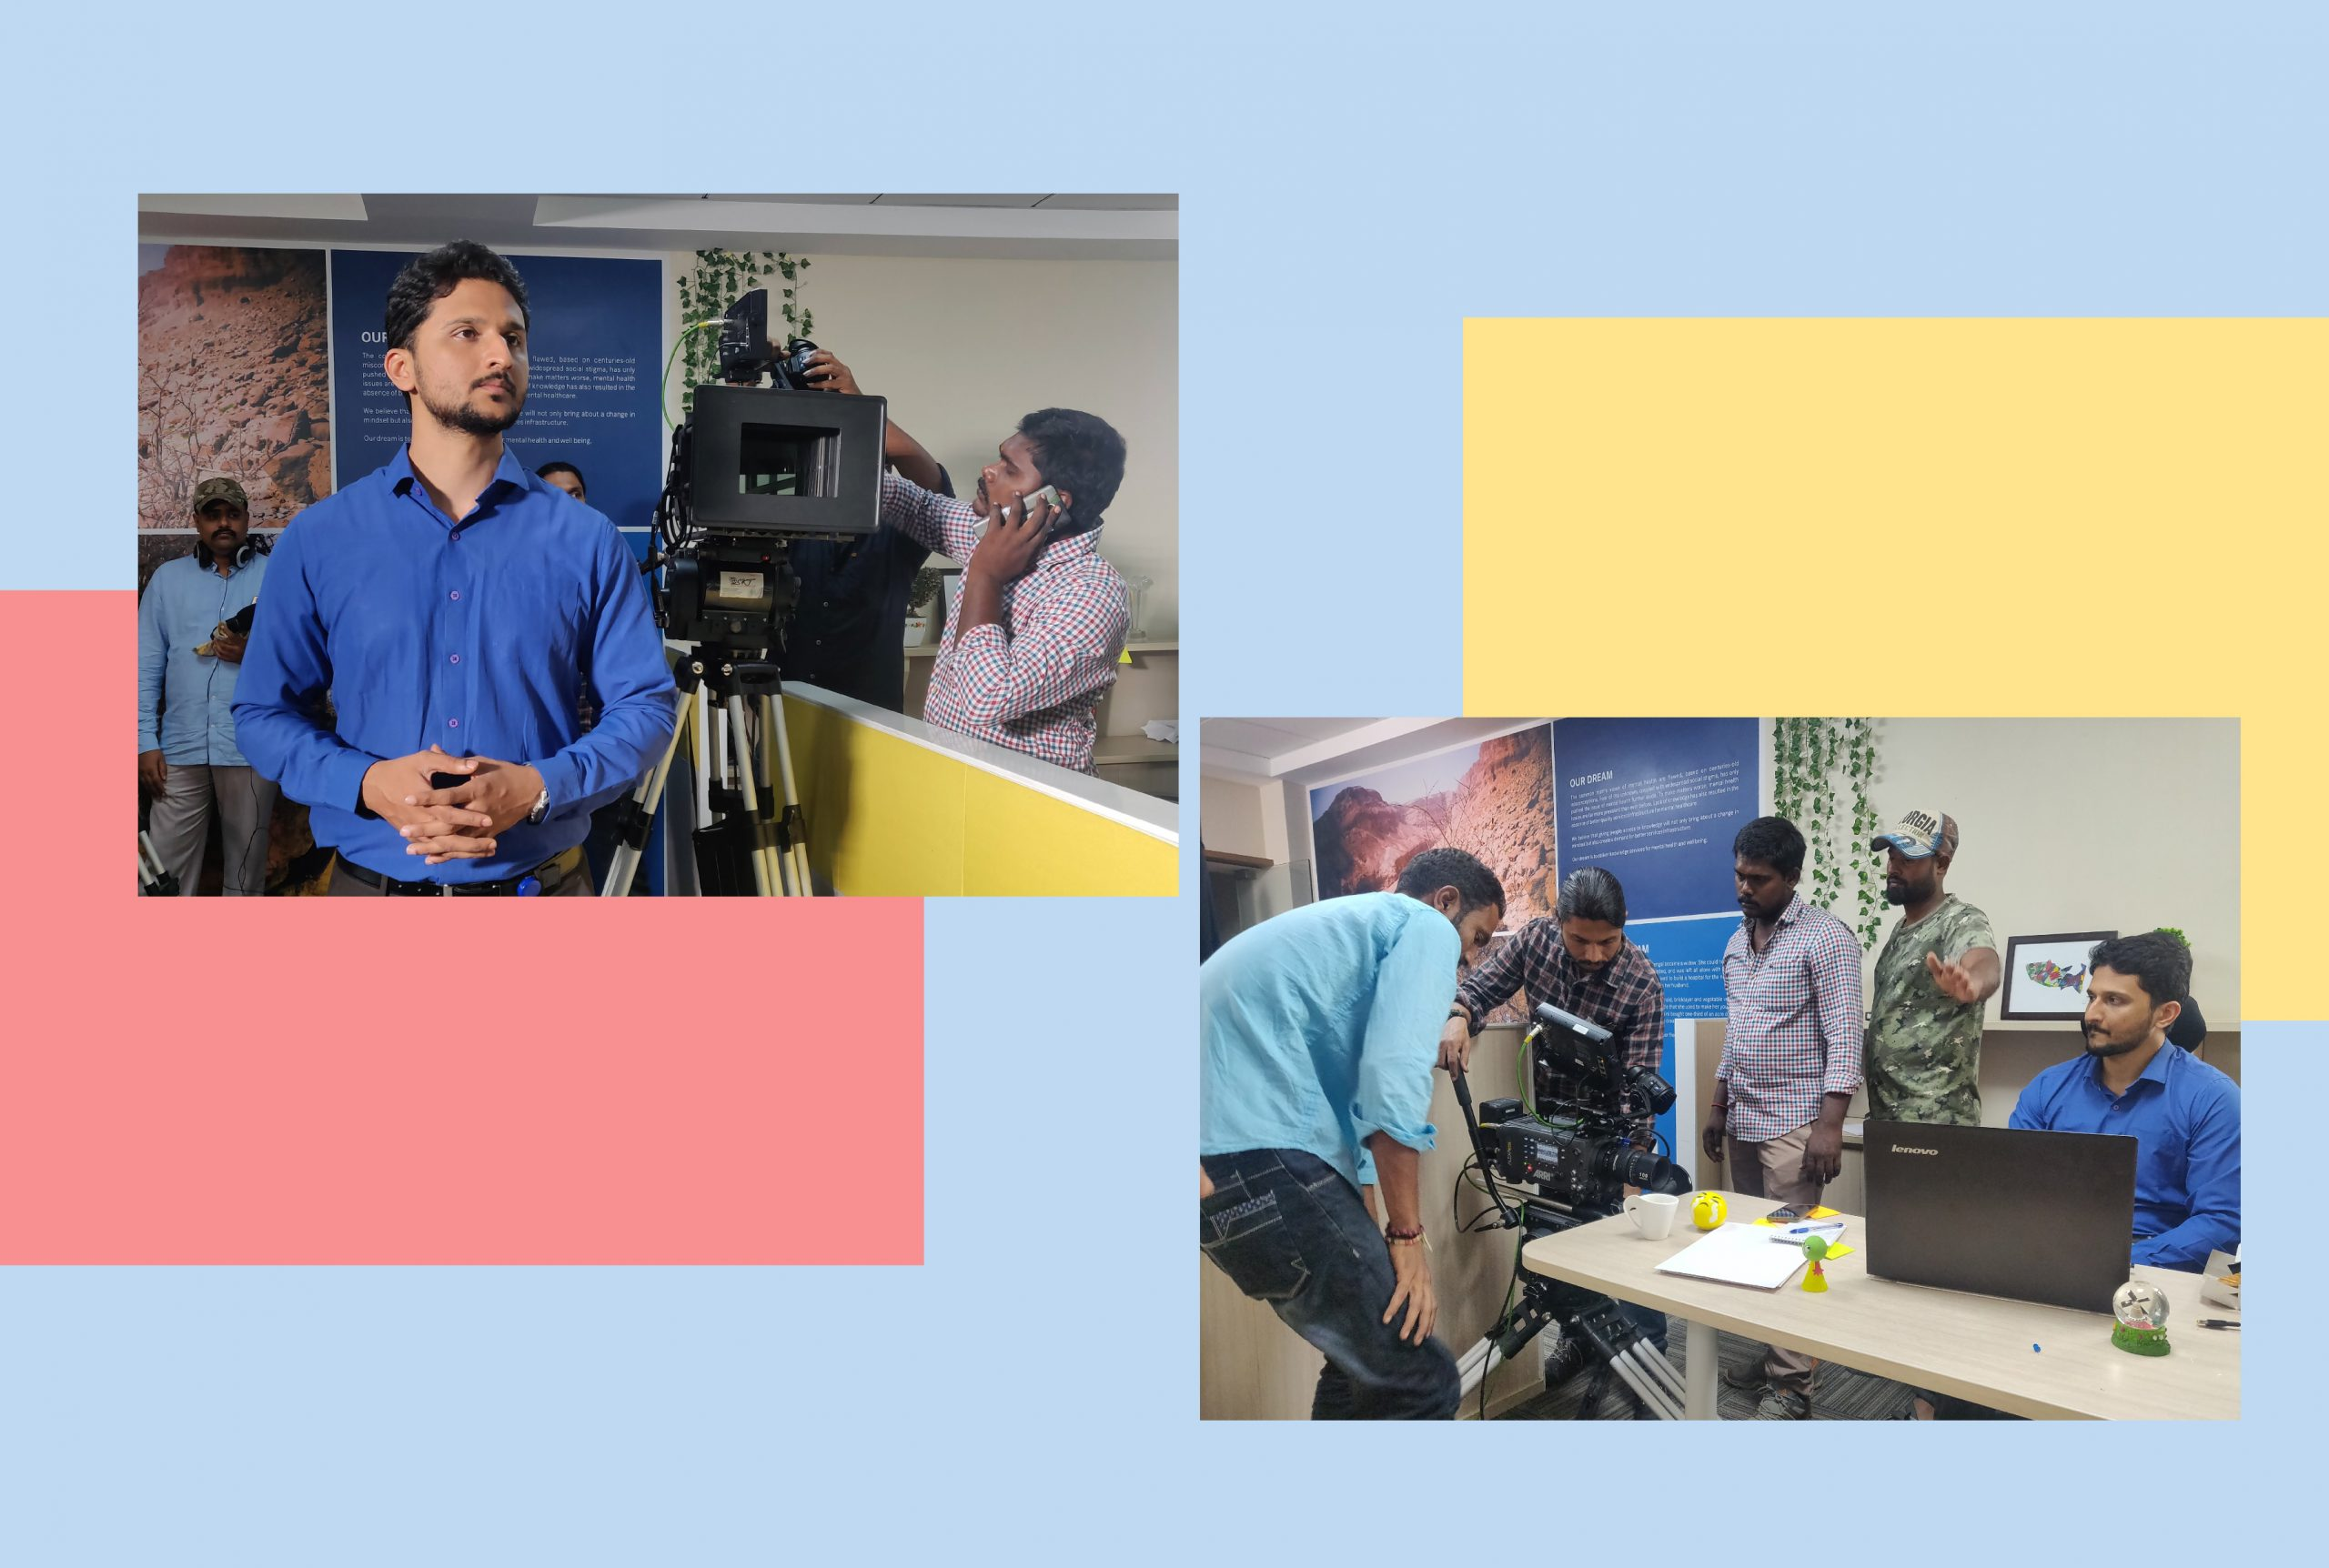 An illustration showing two images from the shoot of a film about mental health. The actor is wearing a blue shirt as he prepares to the play the part of someone with mental illness.